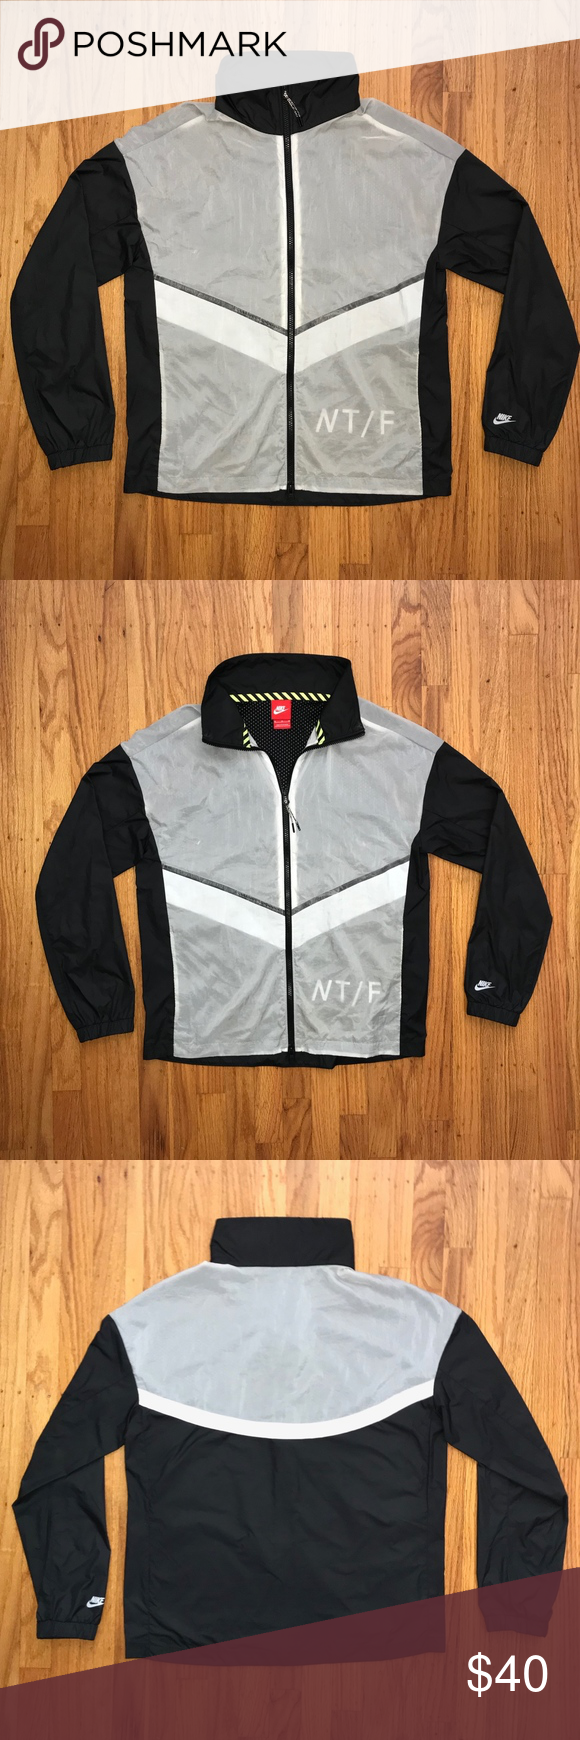 1b20e1b8e Nike Reflective Windbreaker (Nike Track and Field) Nike Reflective  Waterproof Track and Field Windbreaker - Worn a few times, in excellent  condition - Size ...